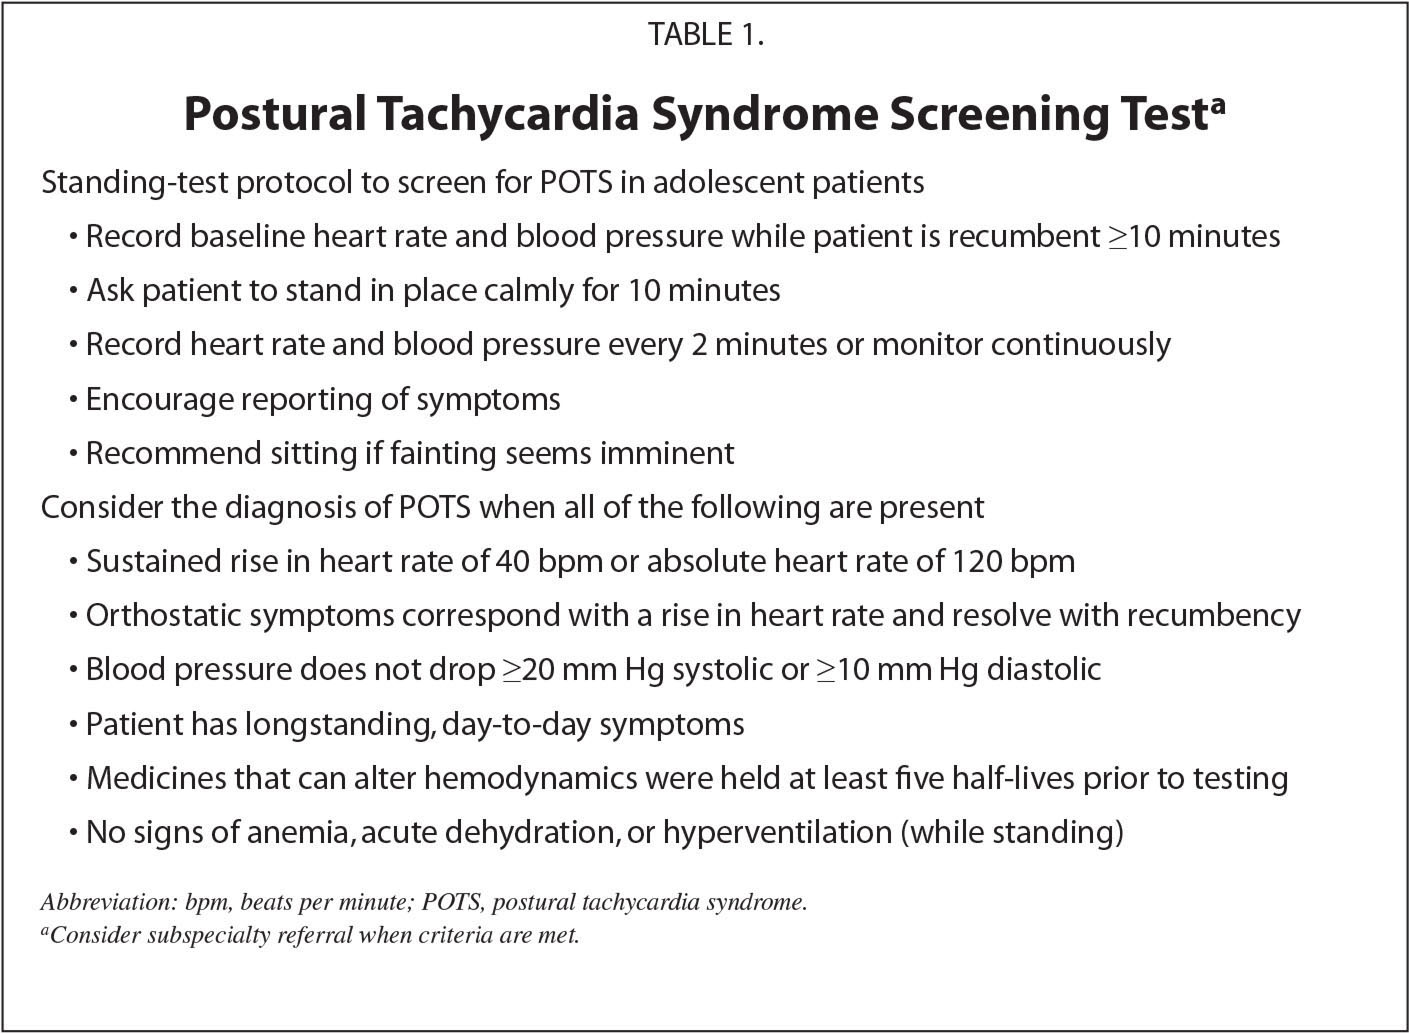 postural orthostatic tachycardia syndrome pots The current study aimed to investigate the association between vitamin b12  levels and postural orthostatic tachycardia syndrome (pots) during adolescence .